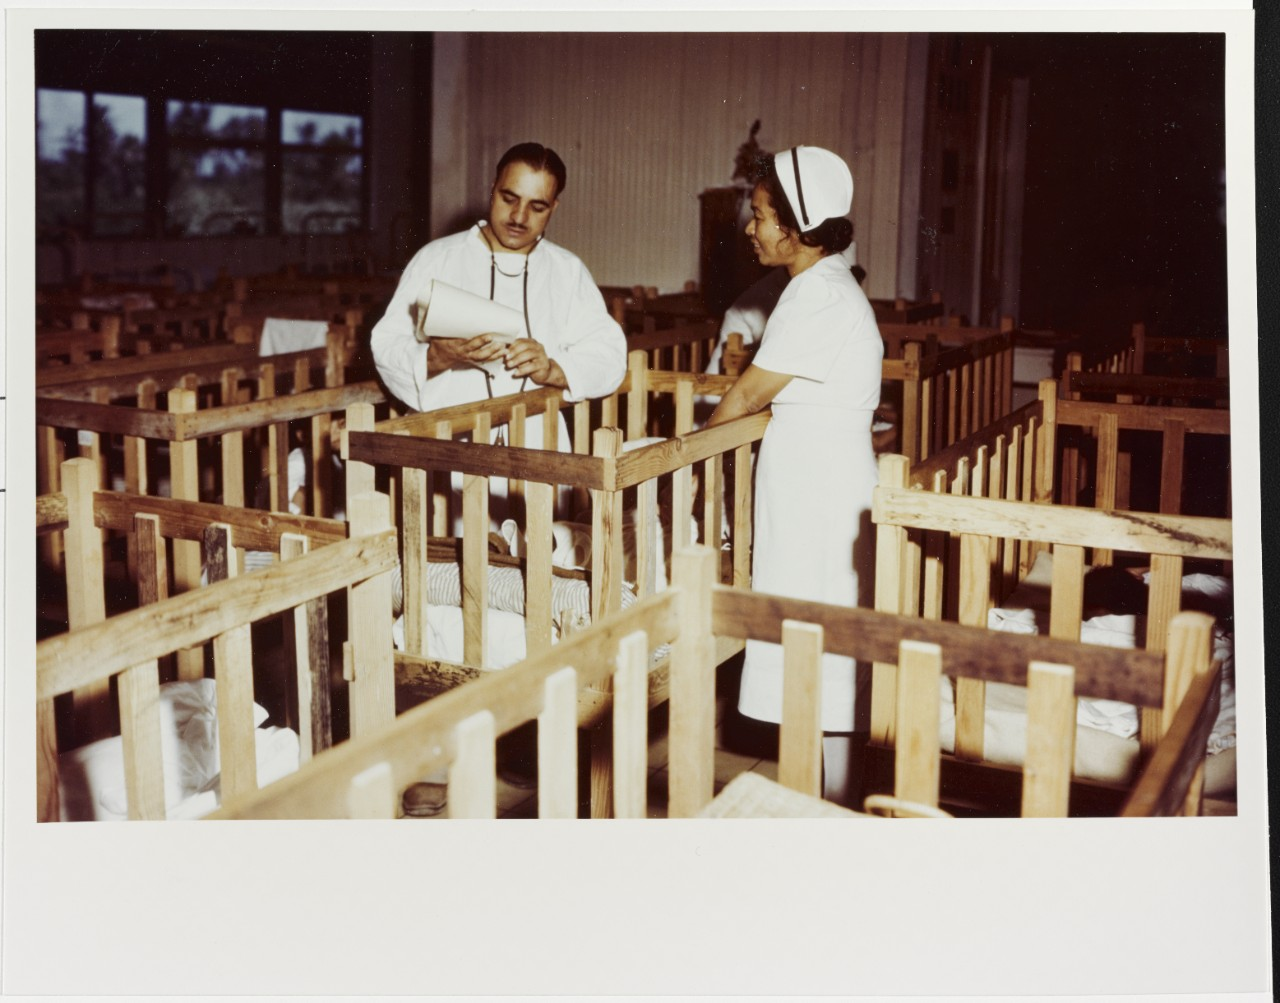 Lieutenant William B. Ruocco, USNR (MC) making the rounds in the children's ward in Agana, Guam in 1944-1945